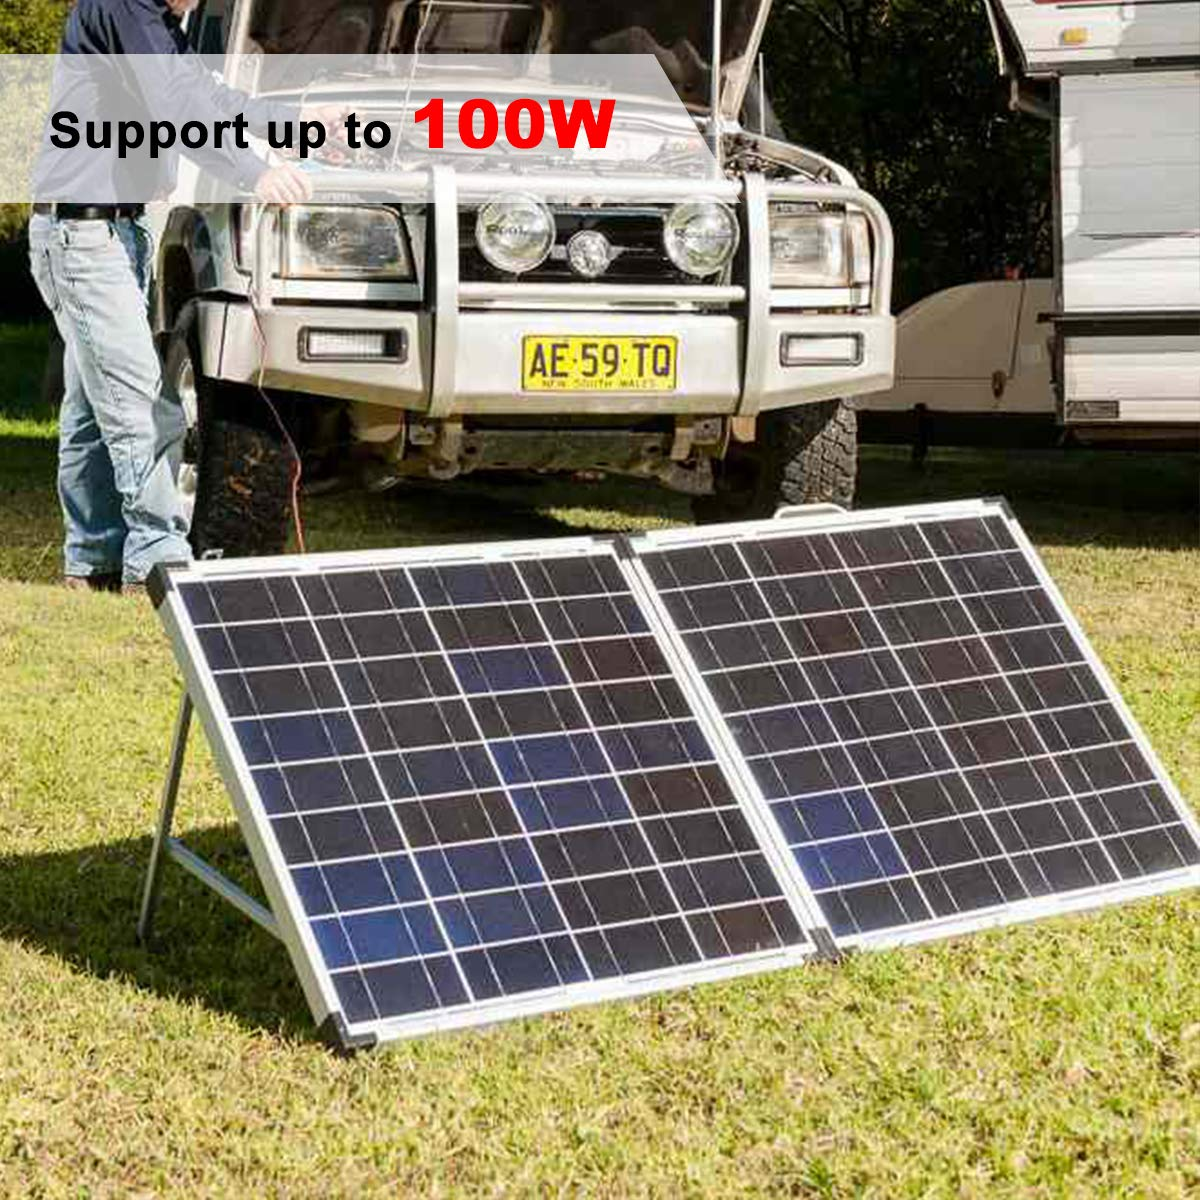 Air Jade Angle Adjustable Solar Panel Tilt Mount Brackets Aluminum Alloy Light Weight/&Heavy Duty,Grid Tie or Off Grid,22inch Brackets Supports up to 100W